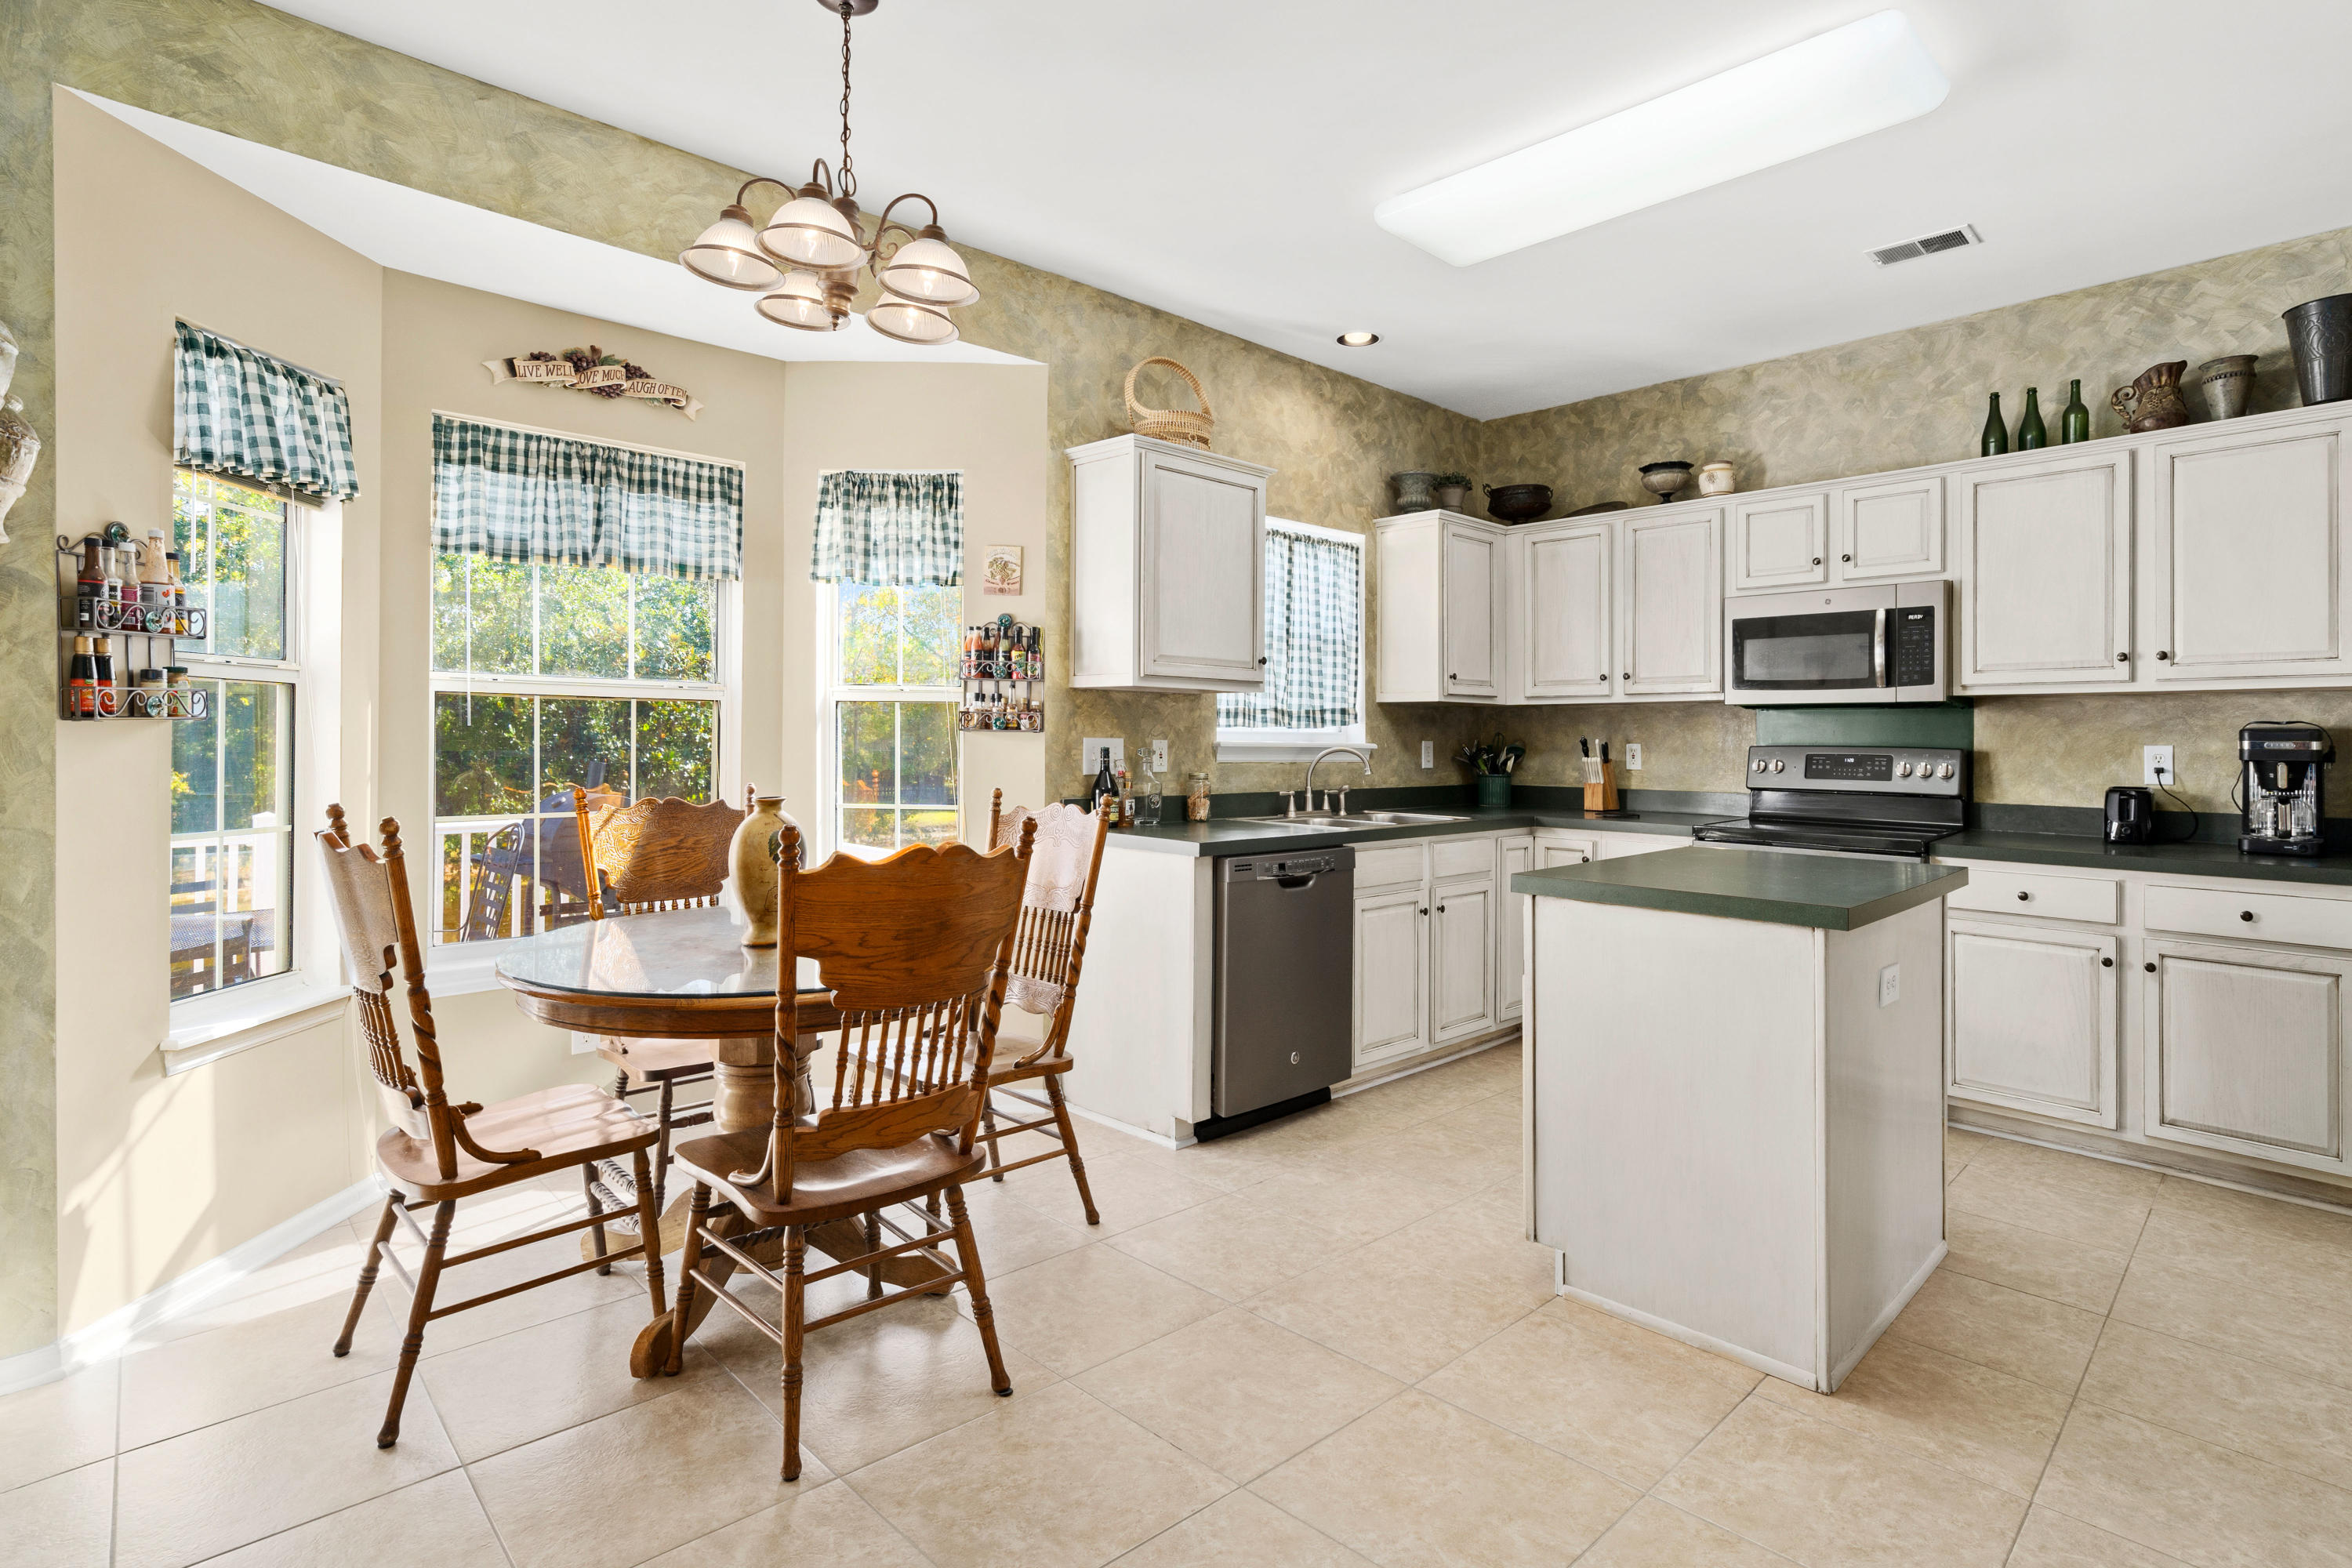 Rivertowne Country Club Homes For Sale - 1821 Great Hope, Mount Pleasant, SC - 13